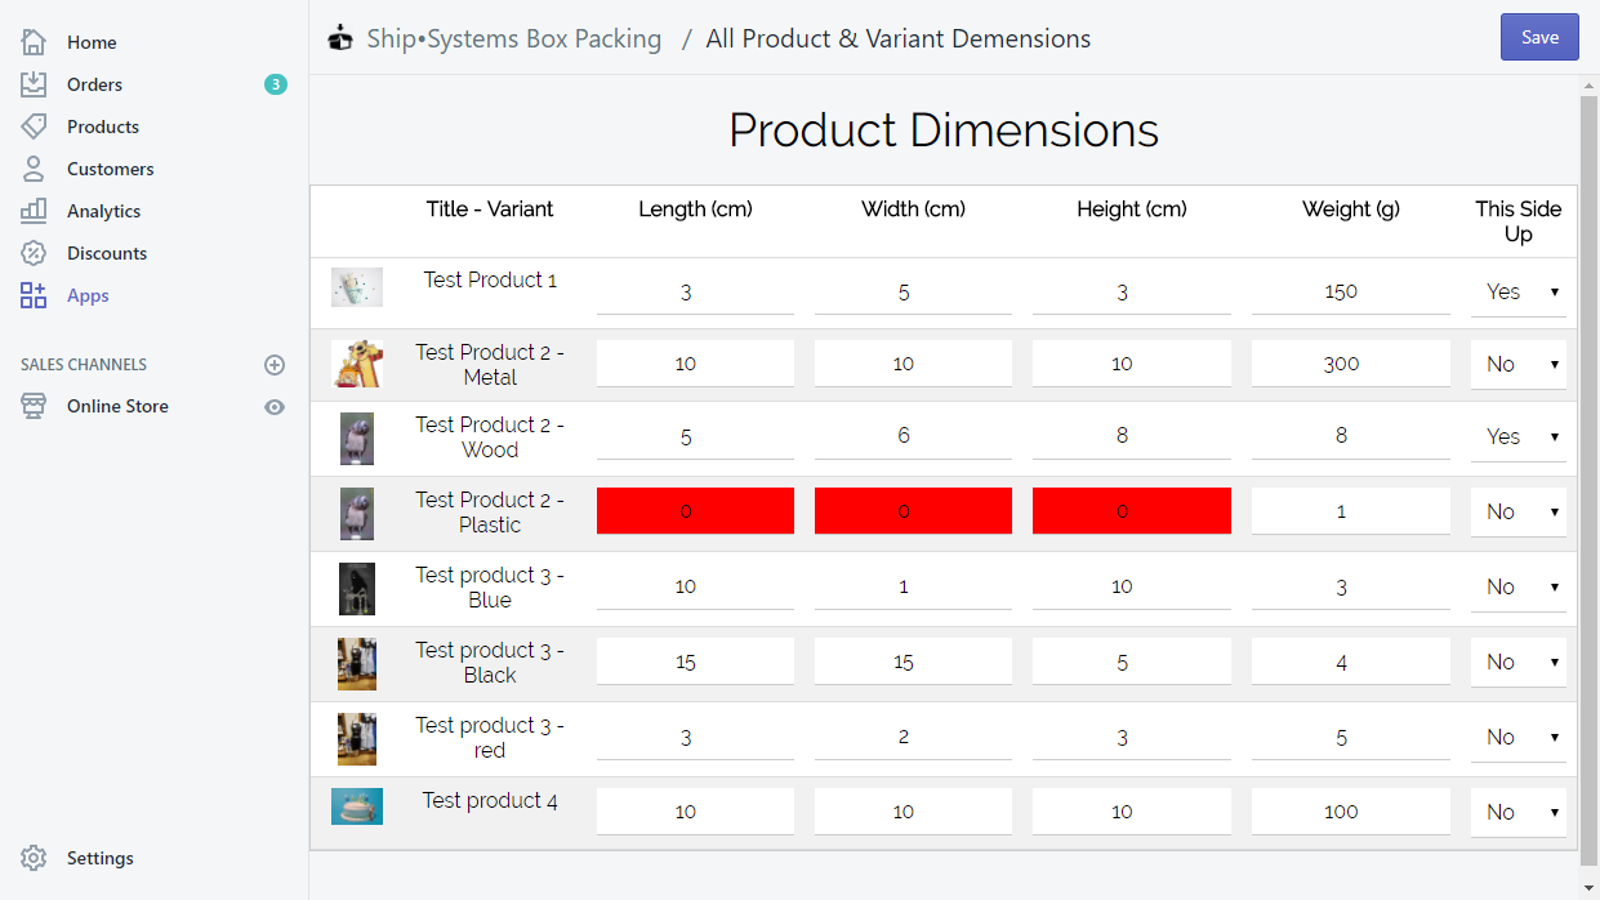 Enter product dimensions one by one or all at once